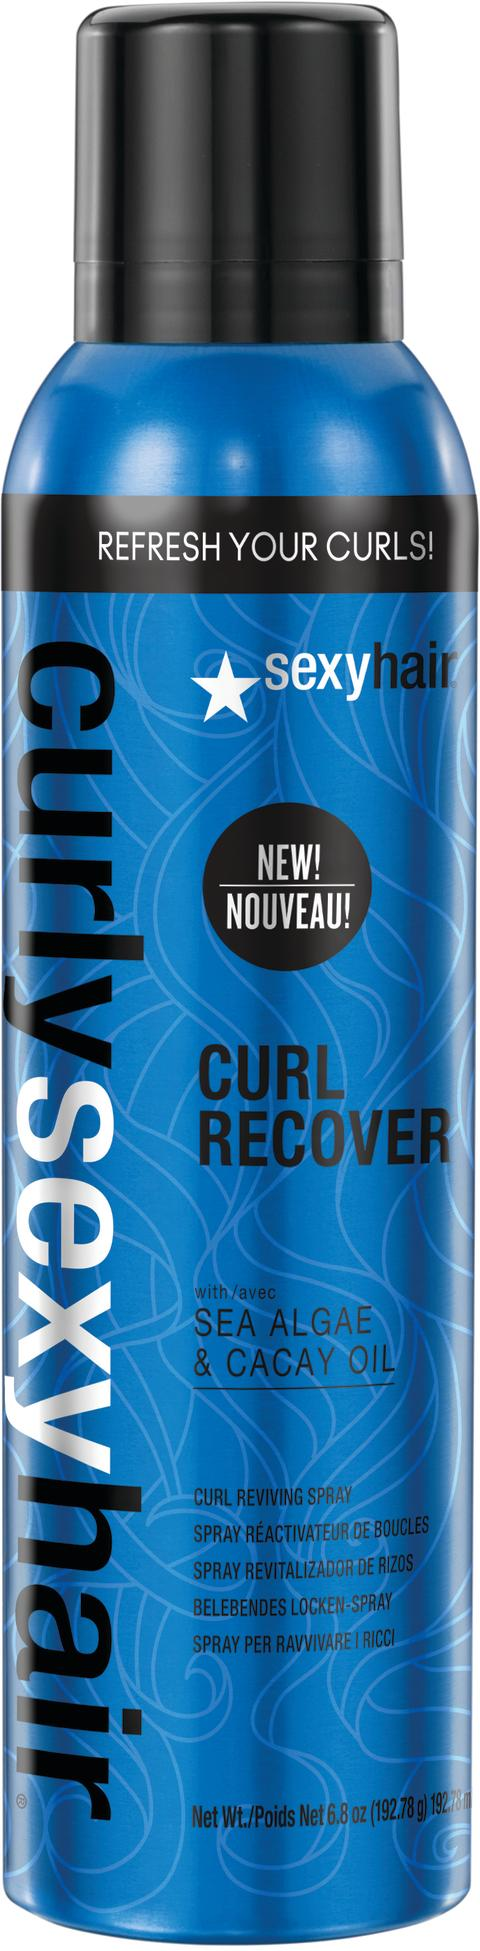 CURLY_CurlRecover_RETAIL_300CMYK